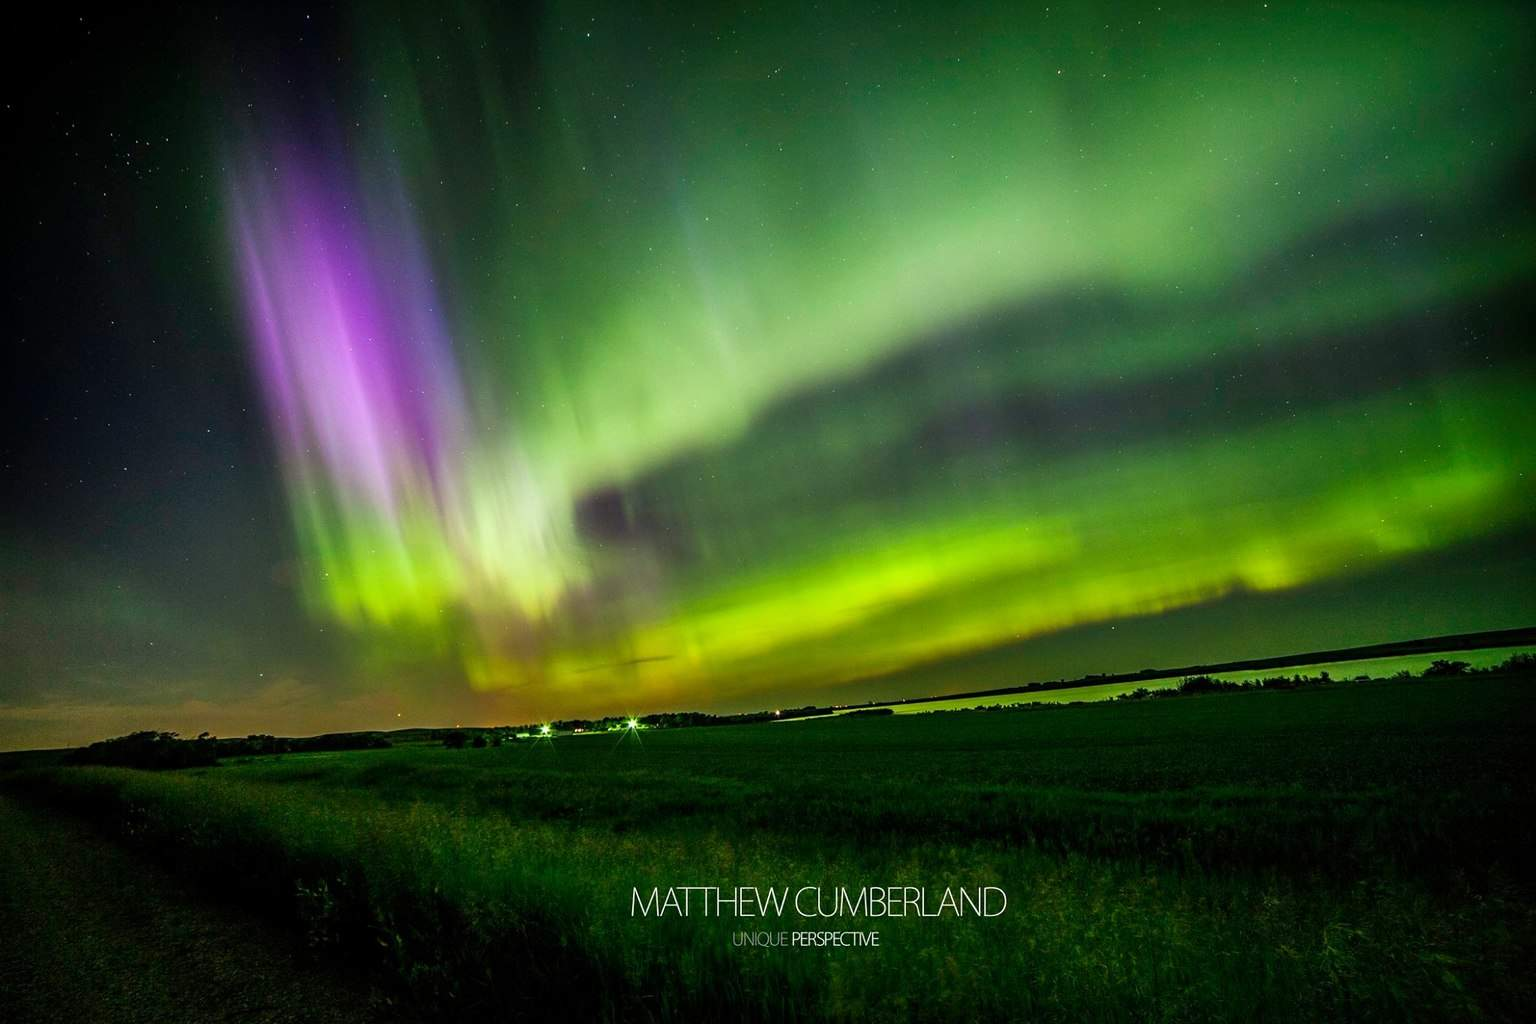 I know its not weather, but had to share the amazing light show of the Northern Lights that took place June 22nd in North Dakota just north of Bismarck. So many photos I would share it was hard to chose lol